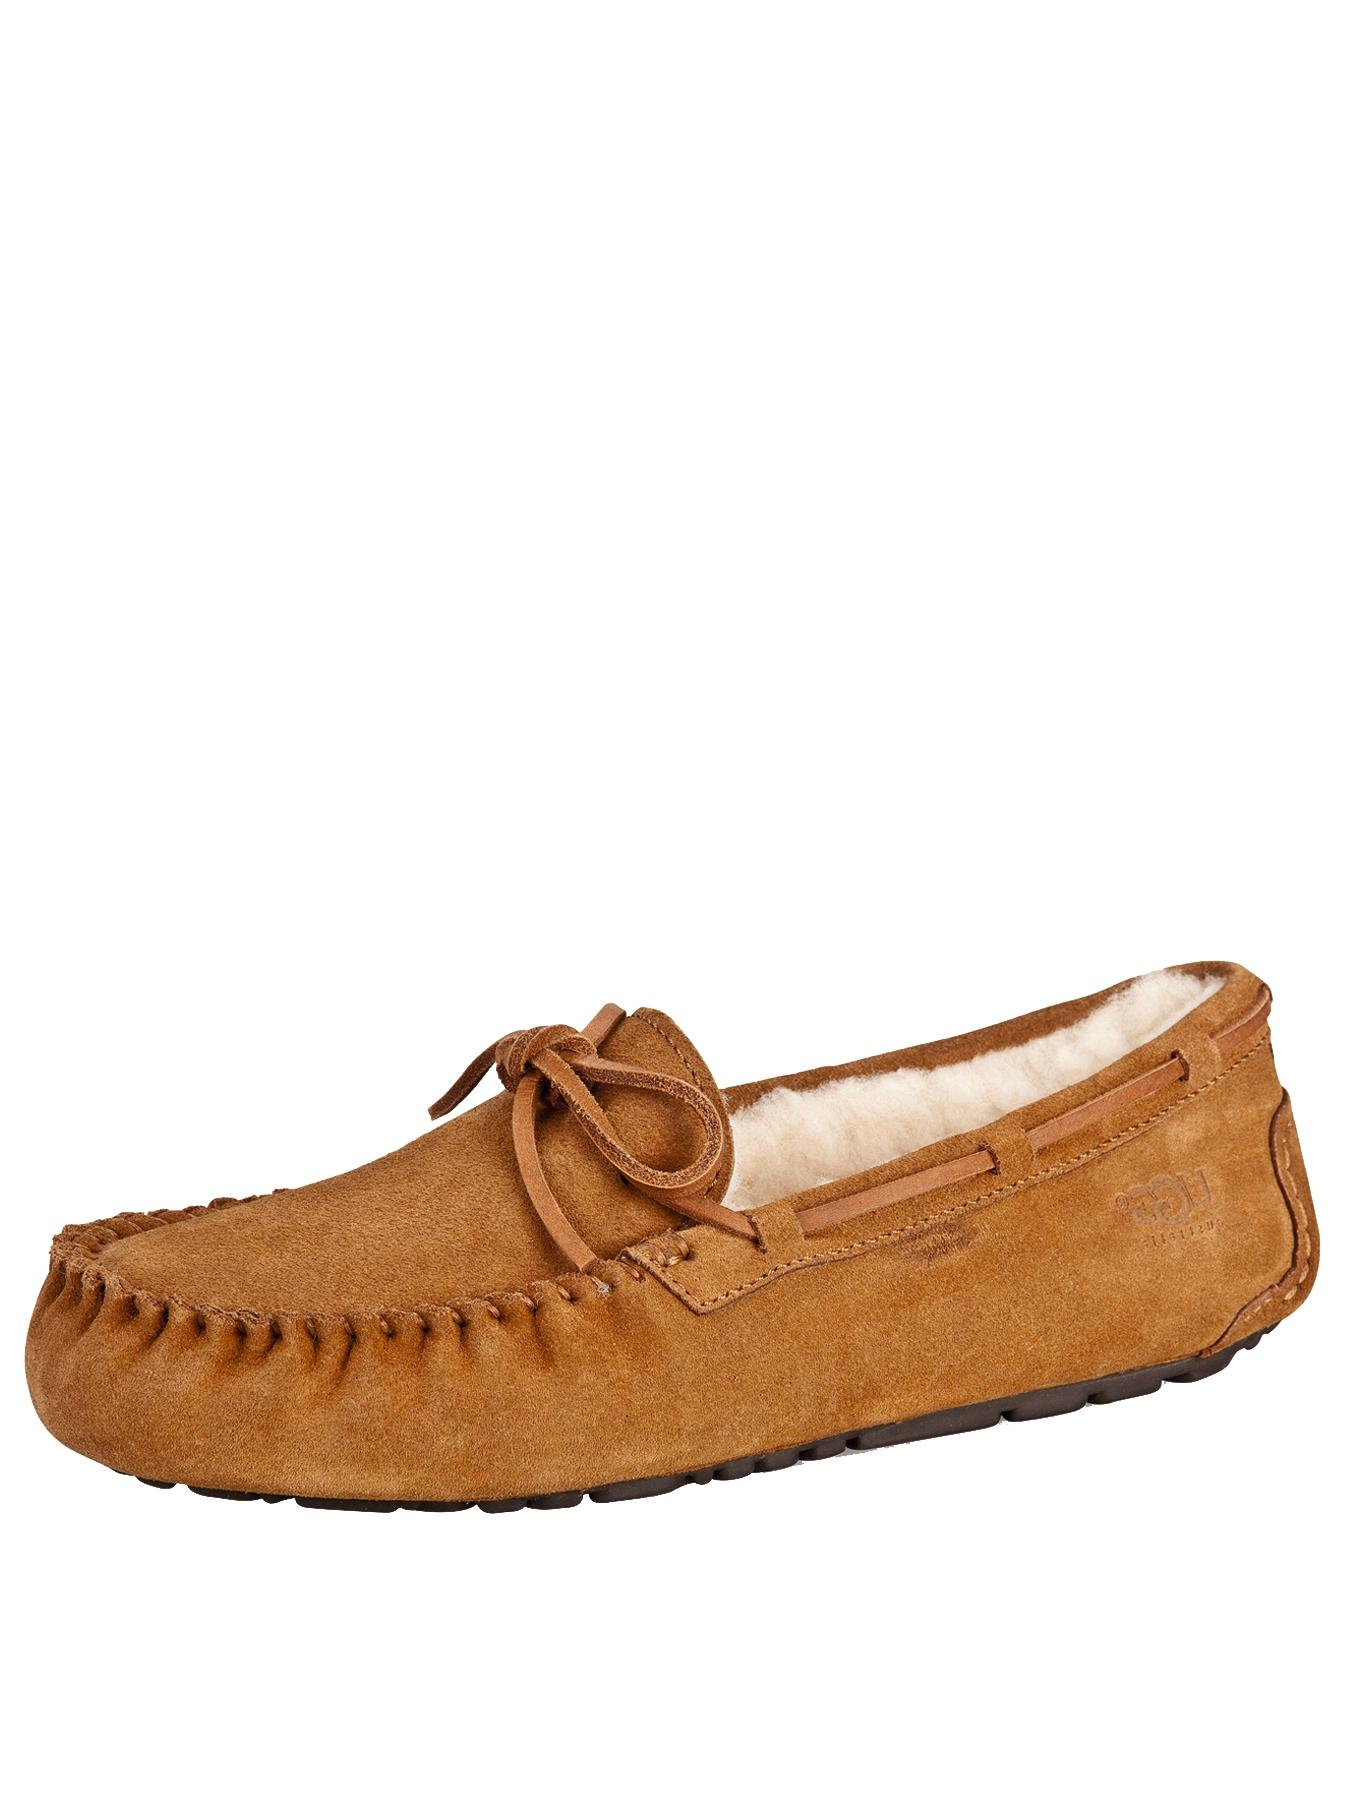 c1266925062 UGG Australia Mens Olsen Moccasin - cheap watches mgc-gas.com